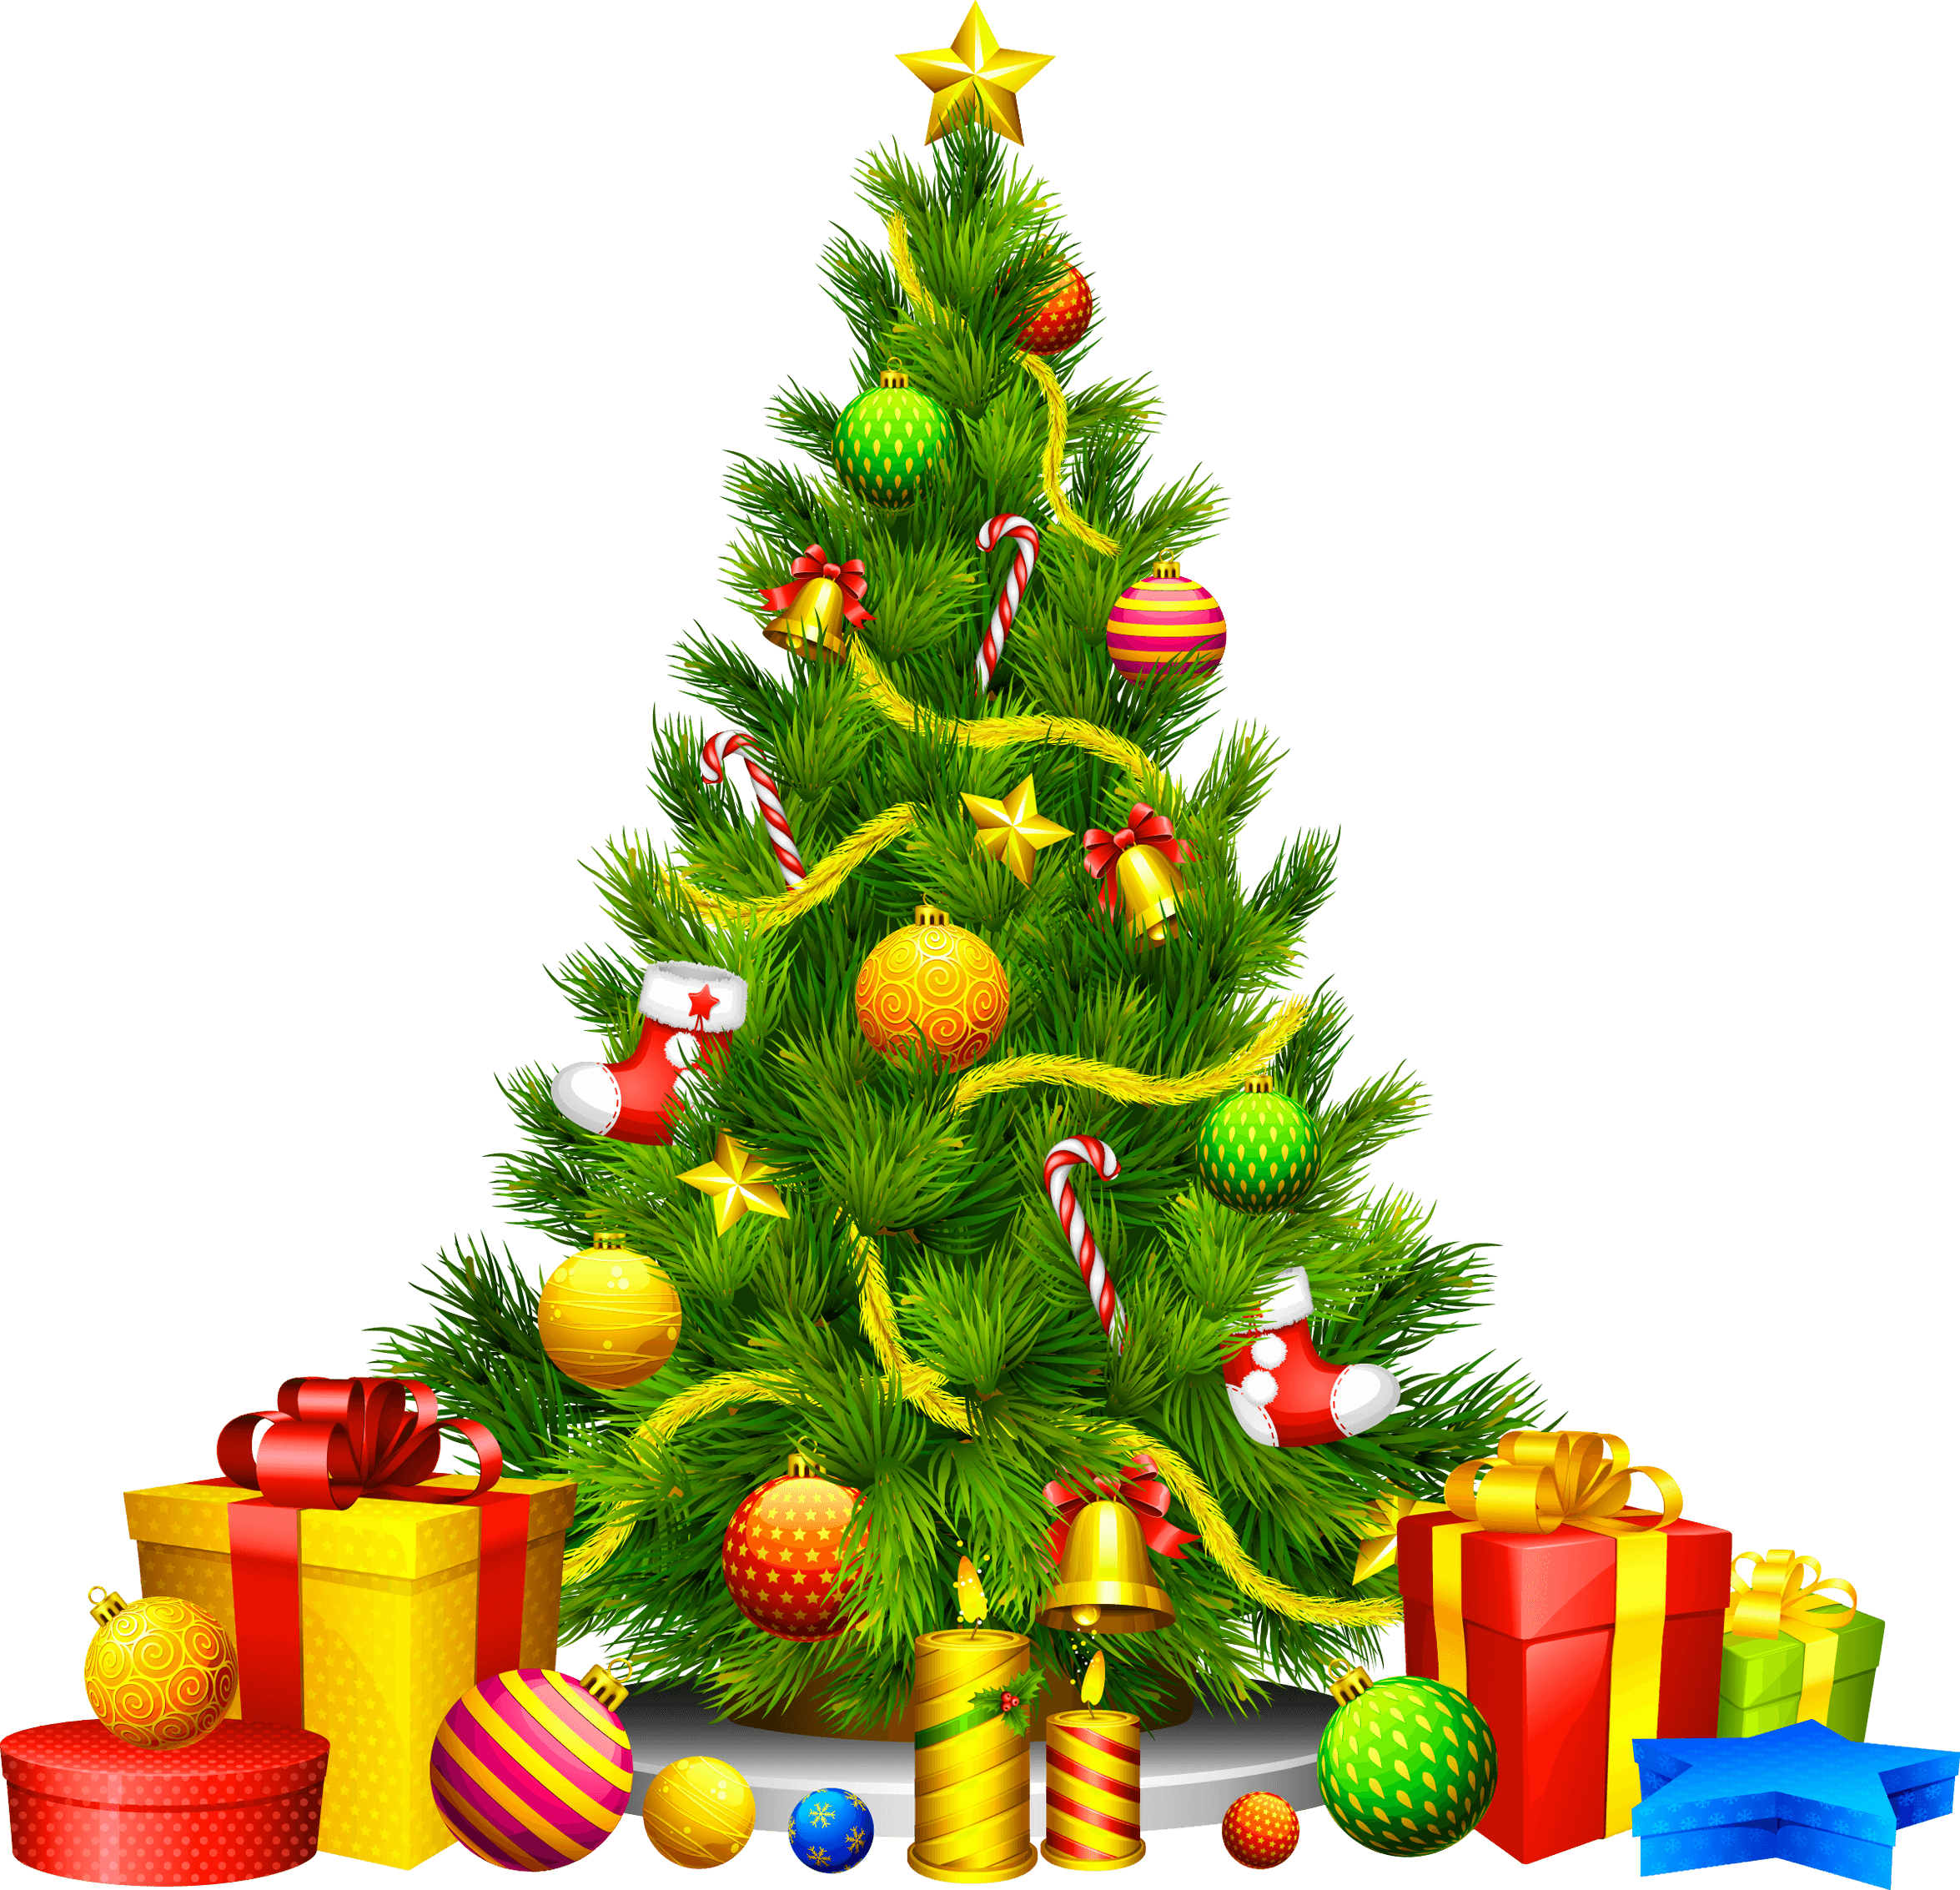 Gifts Cartoon Christmas Fir Tree Png Image.